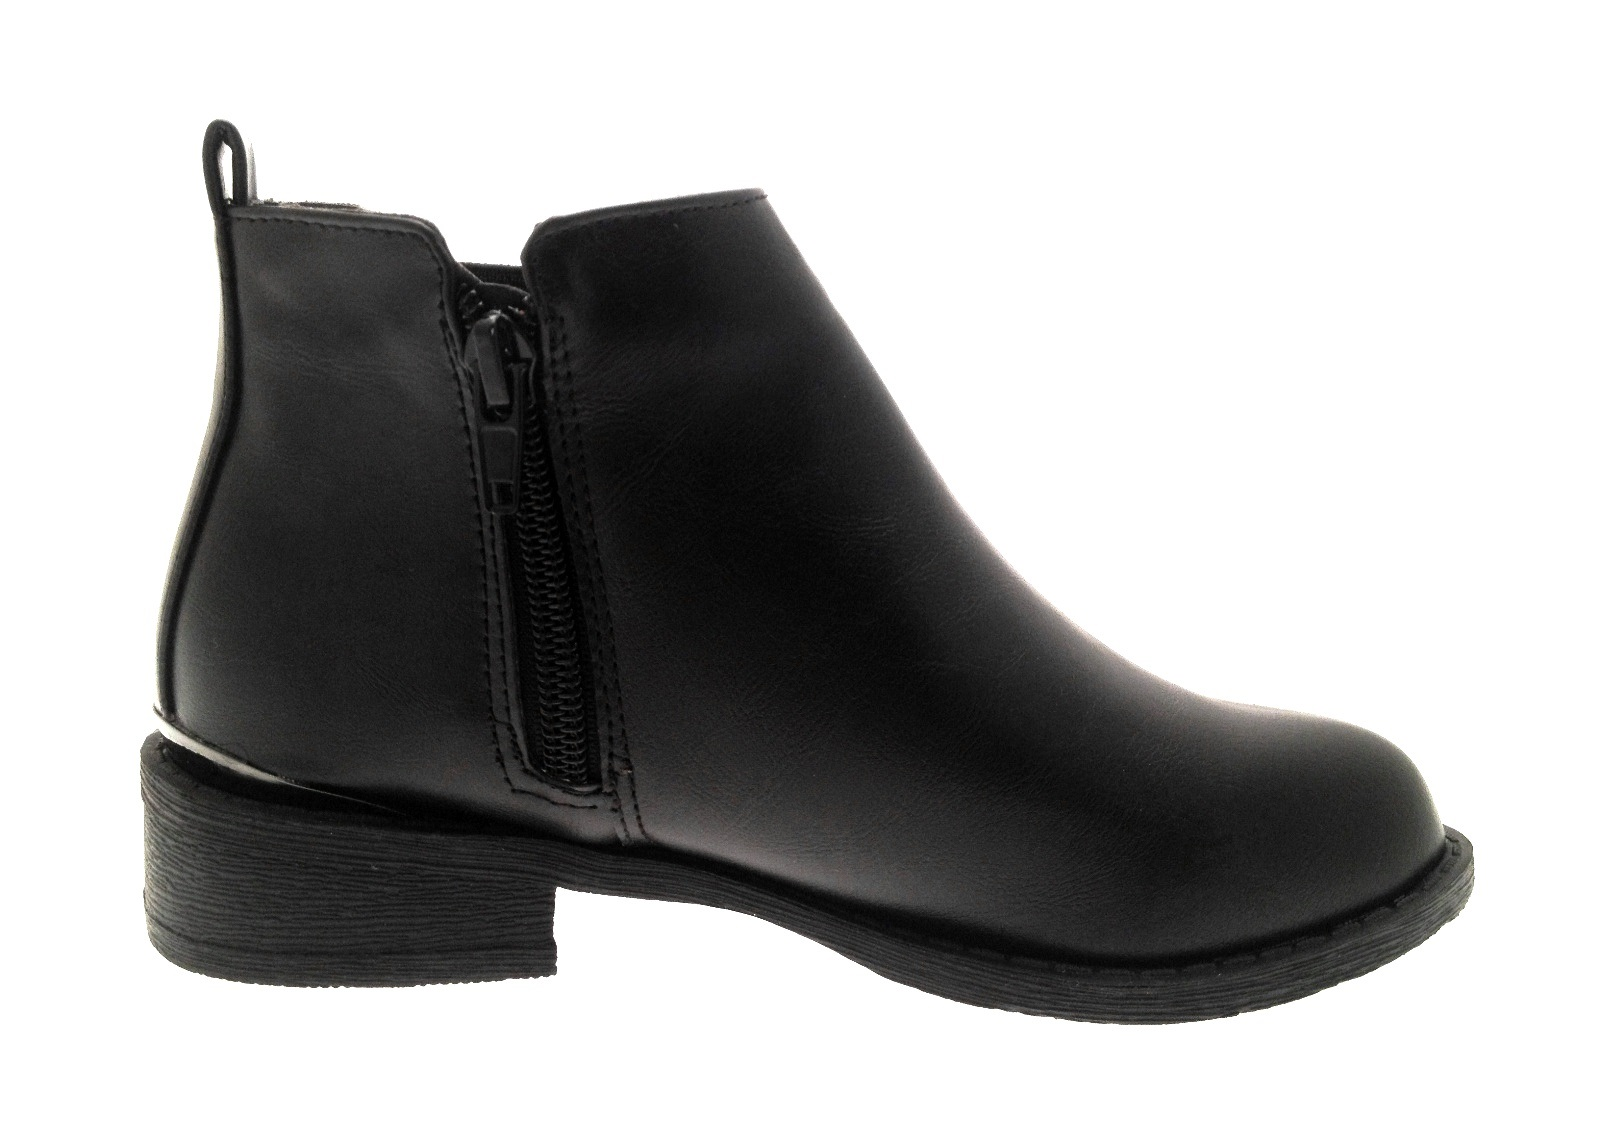 Girls Kids Faux Leather Chelsea Ankle Boots Casual Black School ...